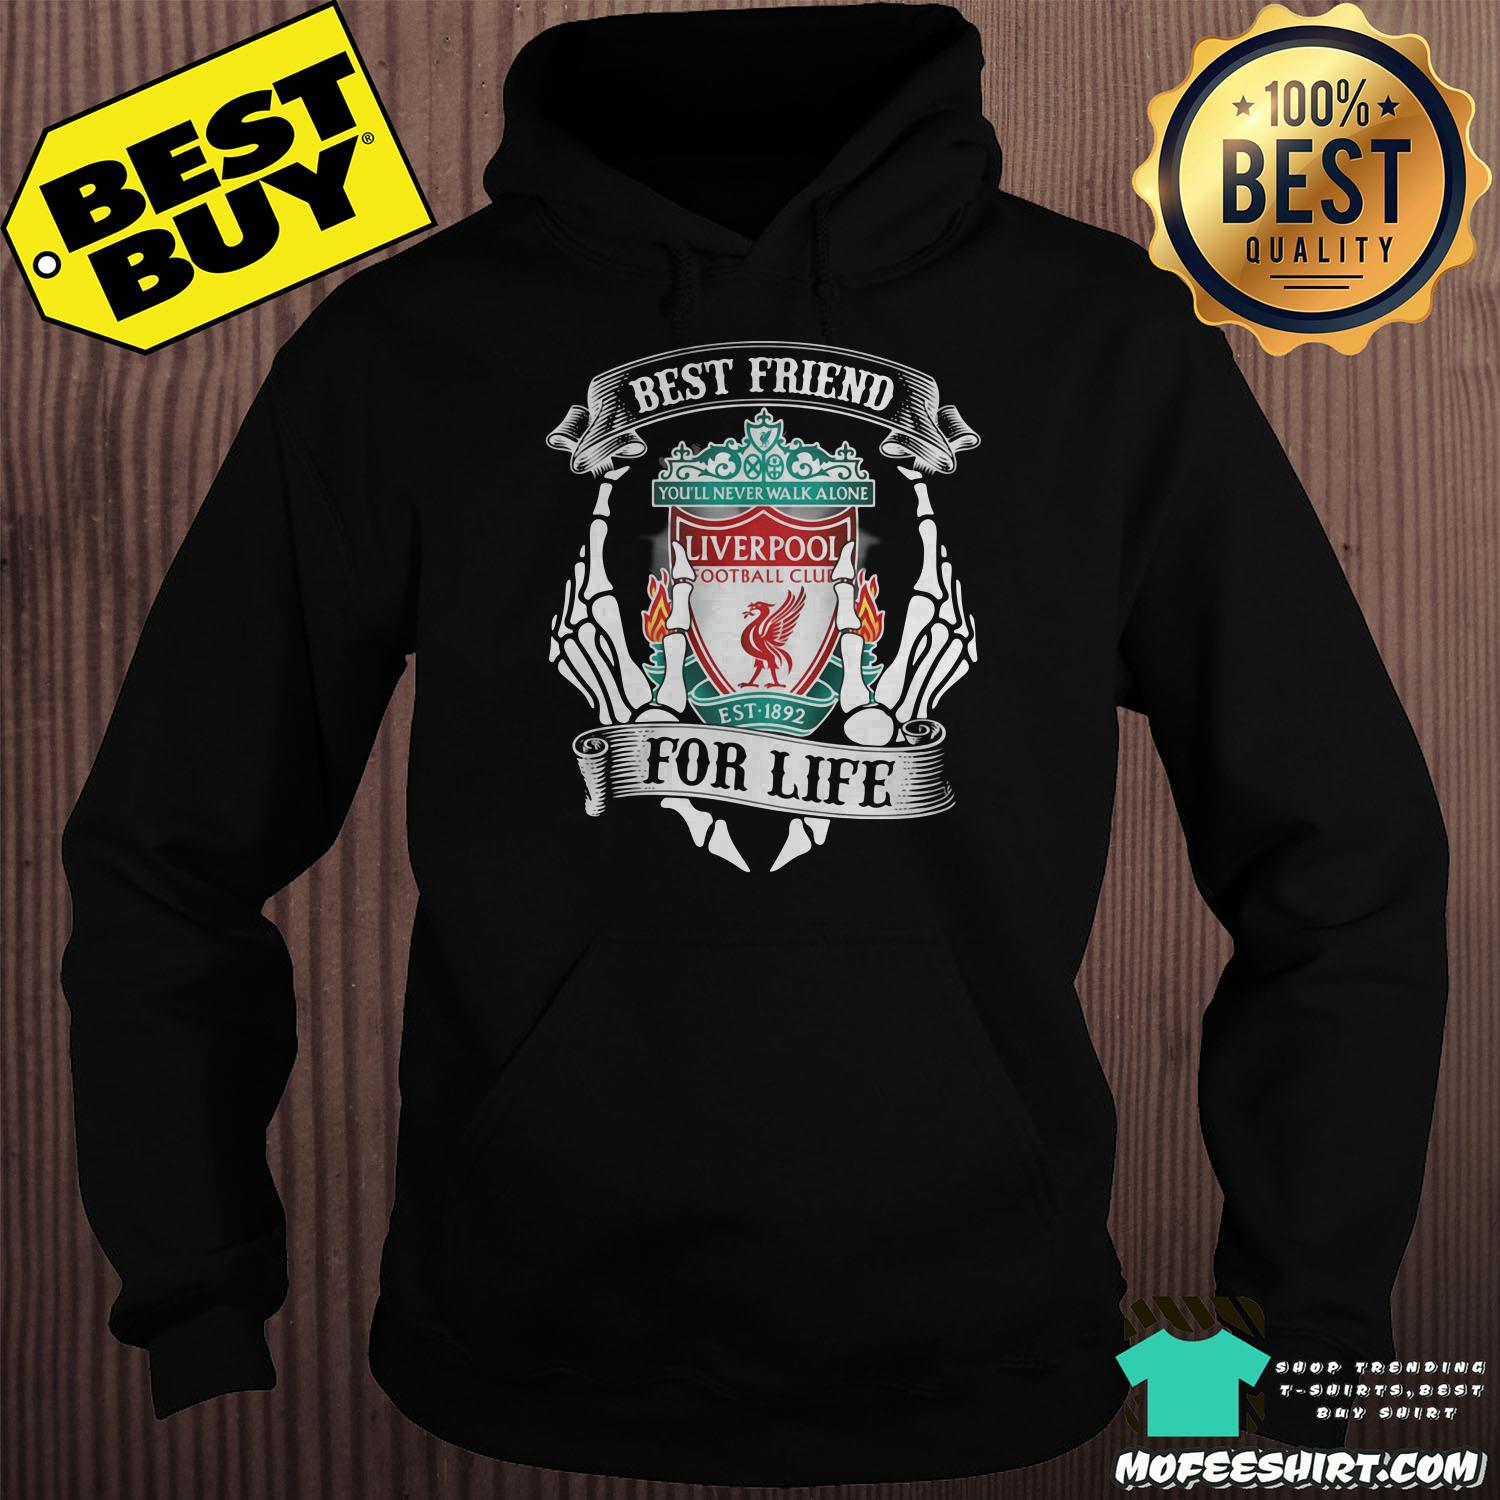 best friend for life liverpool football club youll never walk alone est 1982 hoodie - Best friend For Life Liverpool Football Club You'll never Walk Alone EST 1982 shirt